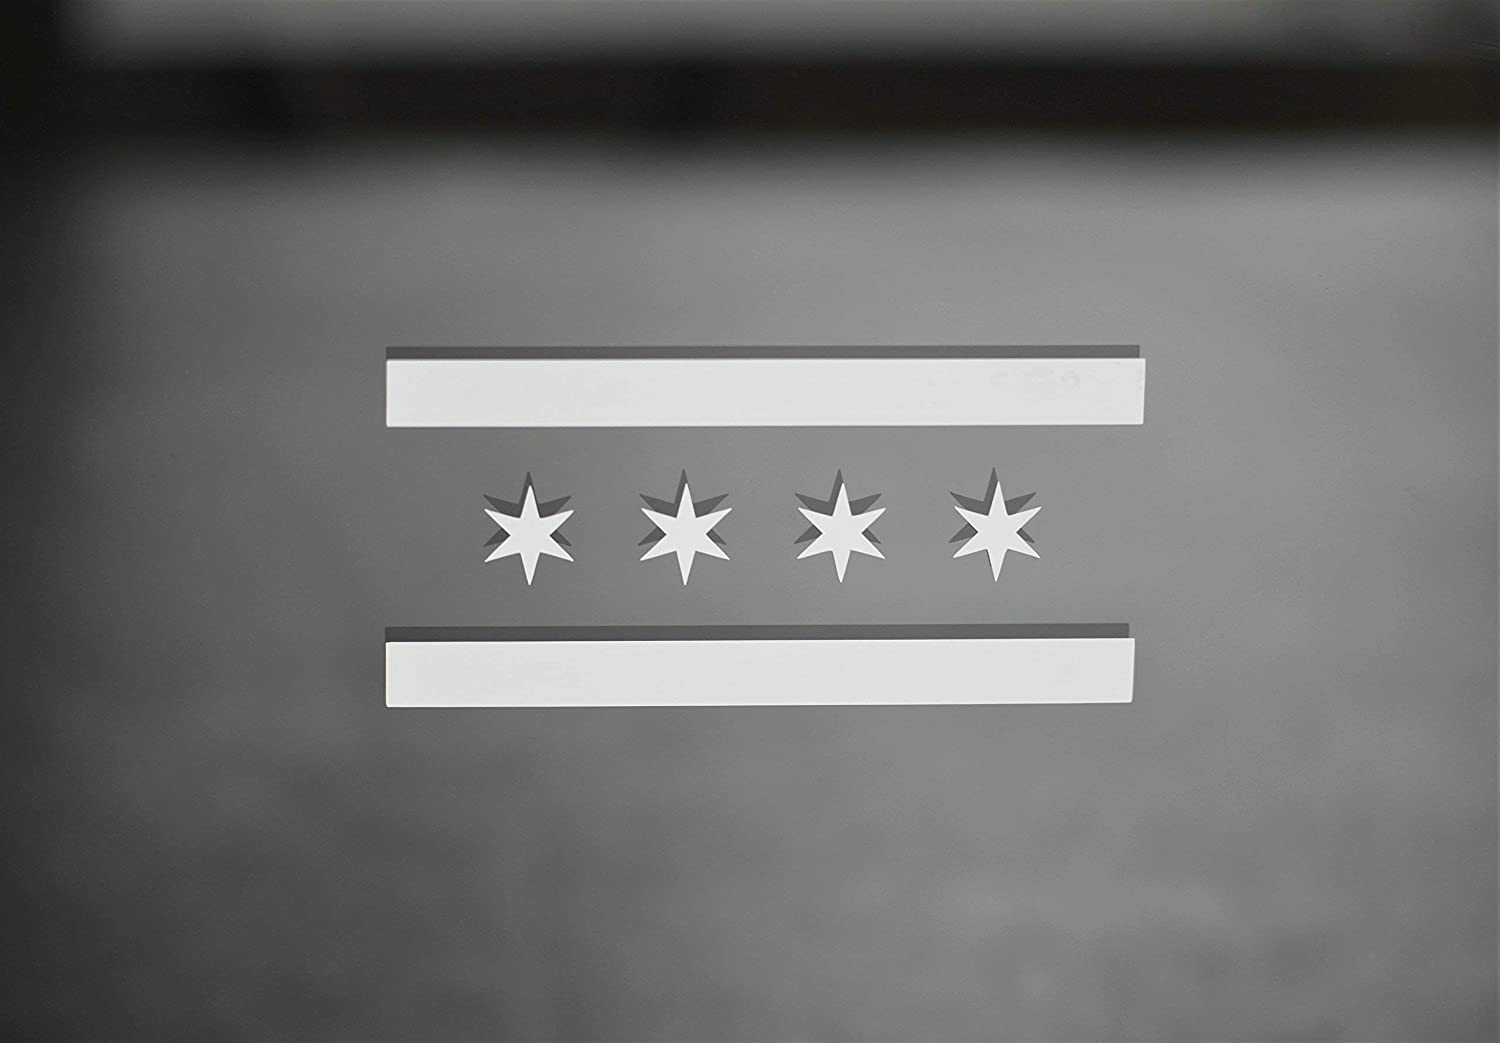 Chicago Flag Vinyl Decal Sticker for the minimalist. Great for Car Windows, Gear, Mugs, Laptops or Wherever. Comes in different sizes and colors. Select from the option menu.